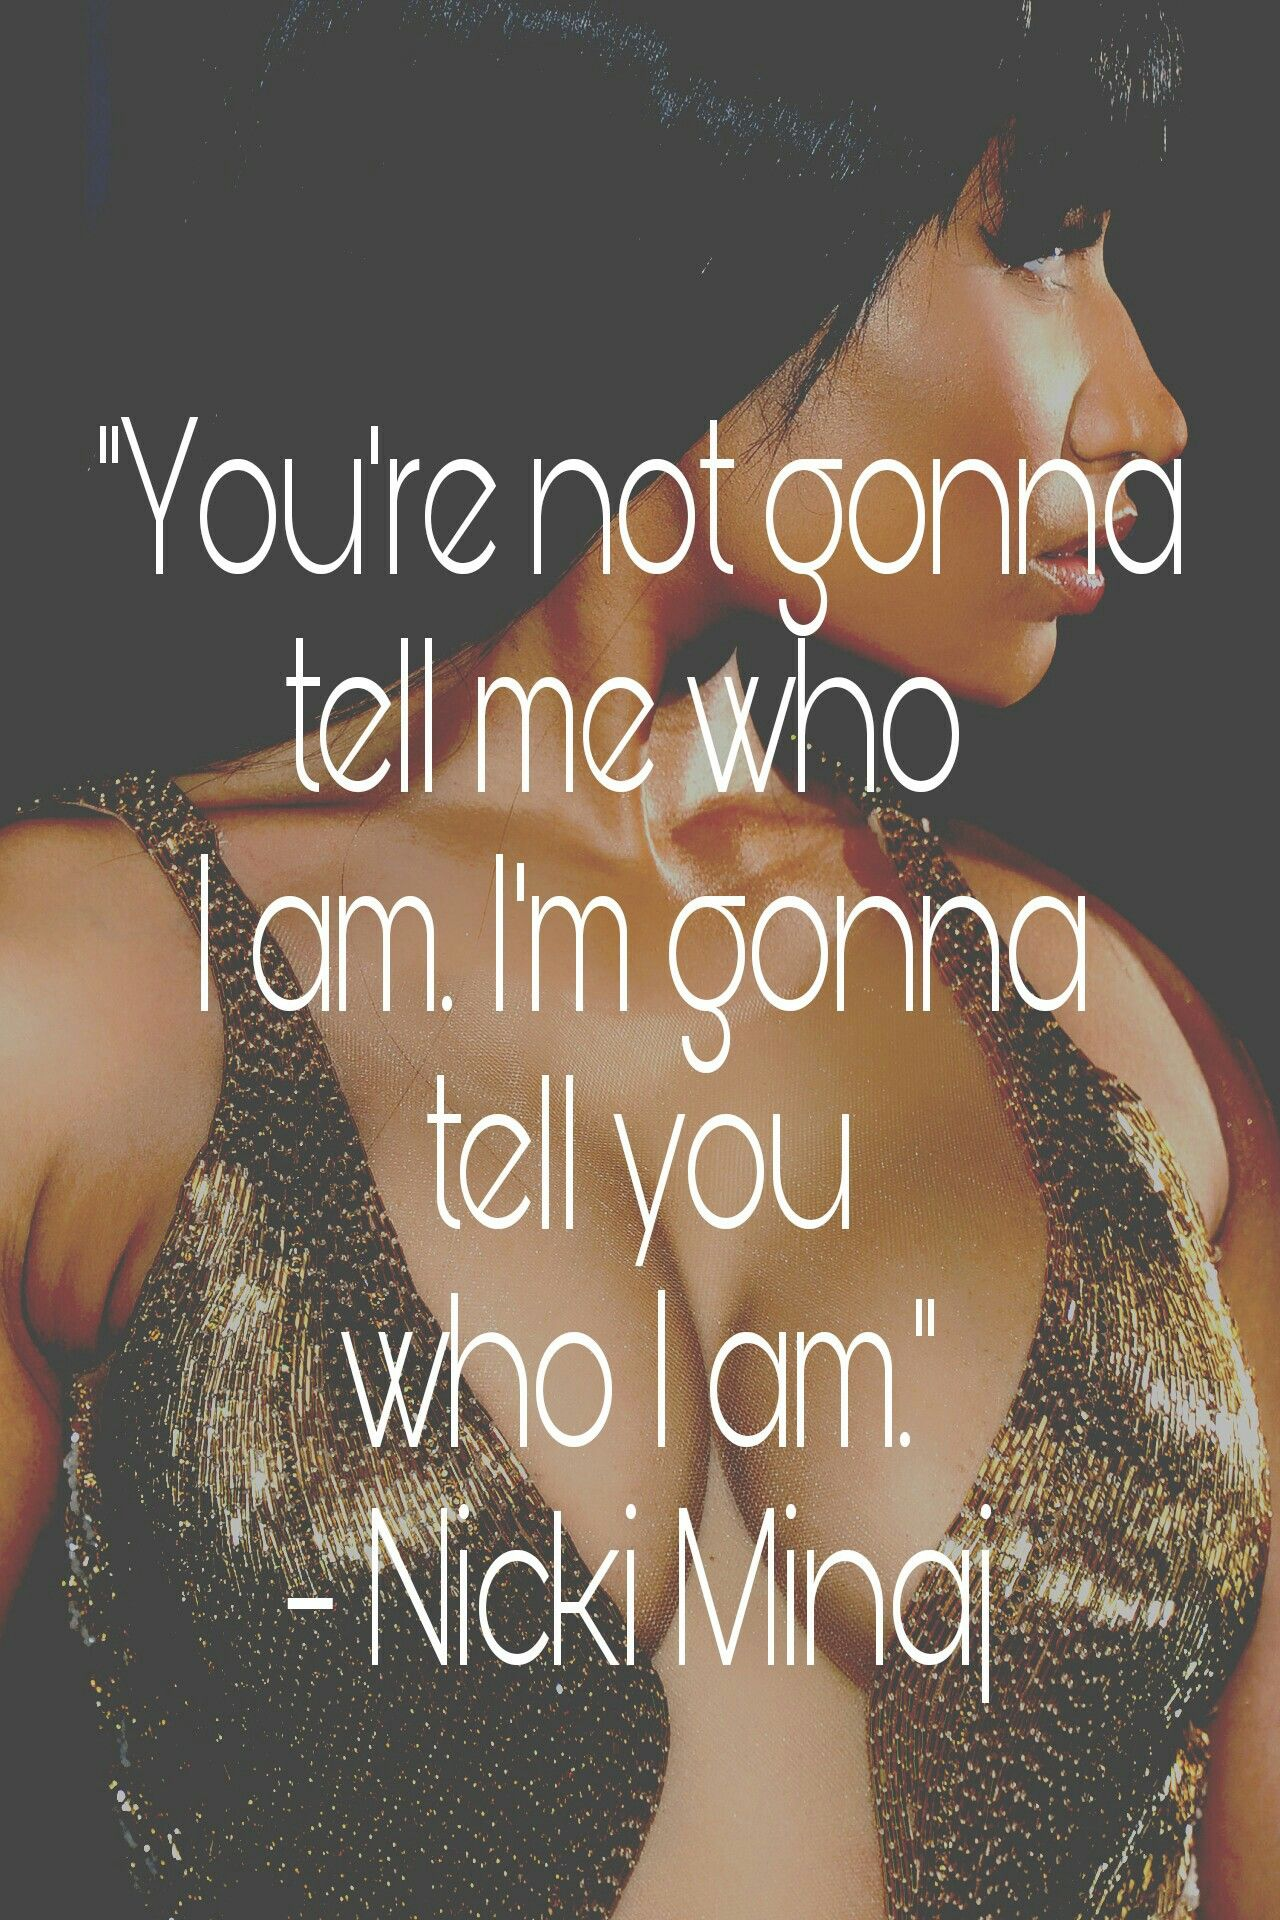 Nicki Minaj Quotes Quotes Pinterest Frases Citas And Frases